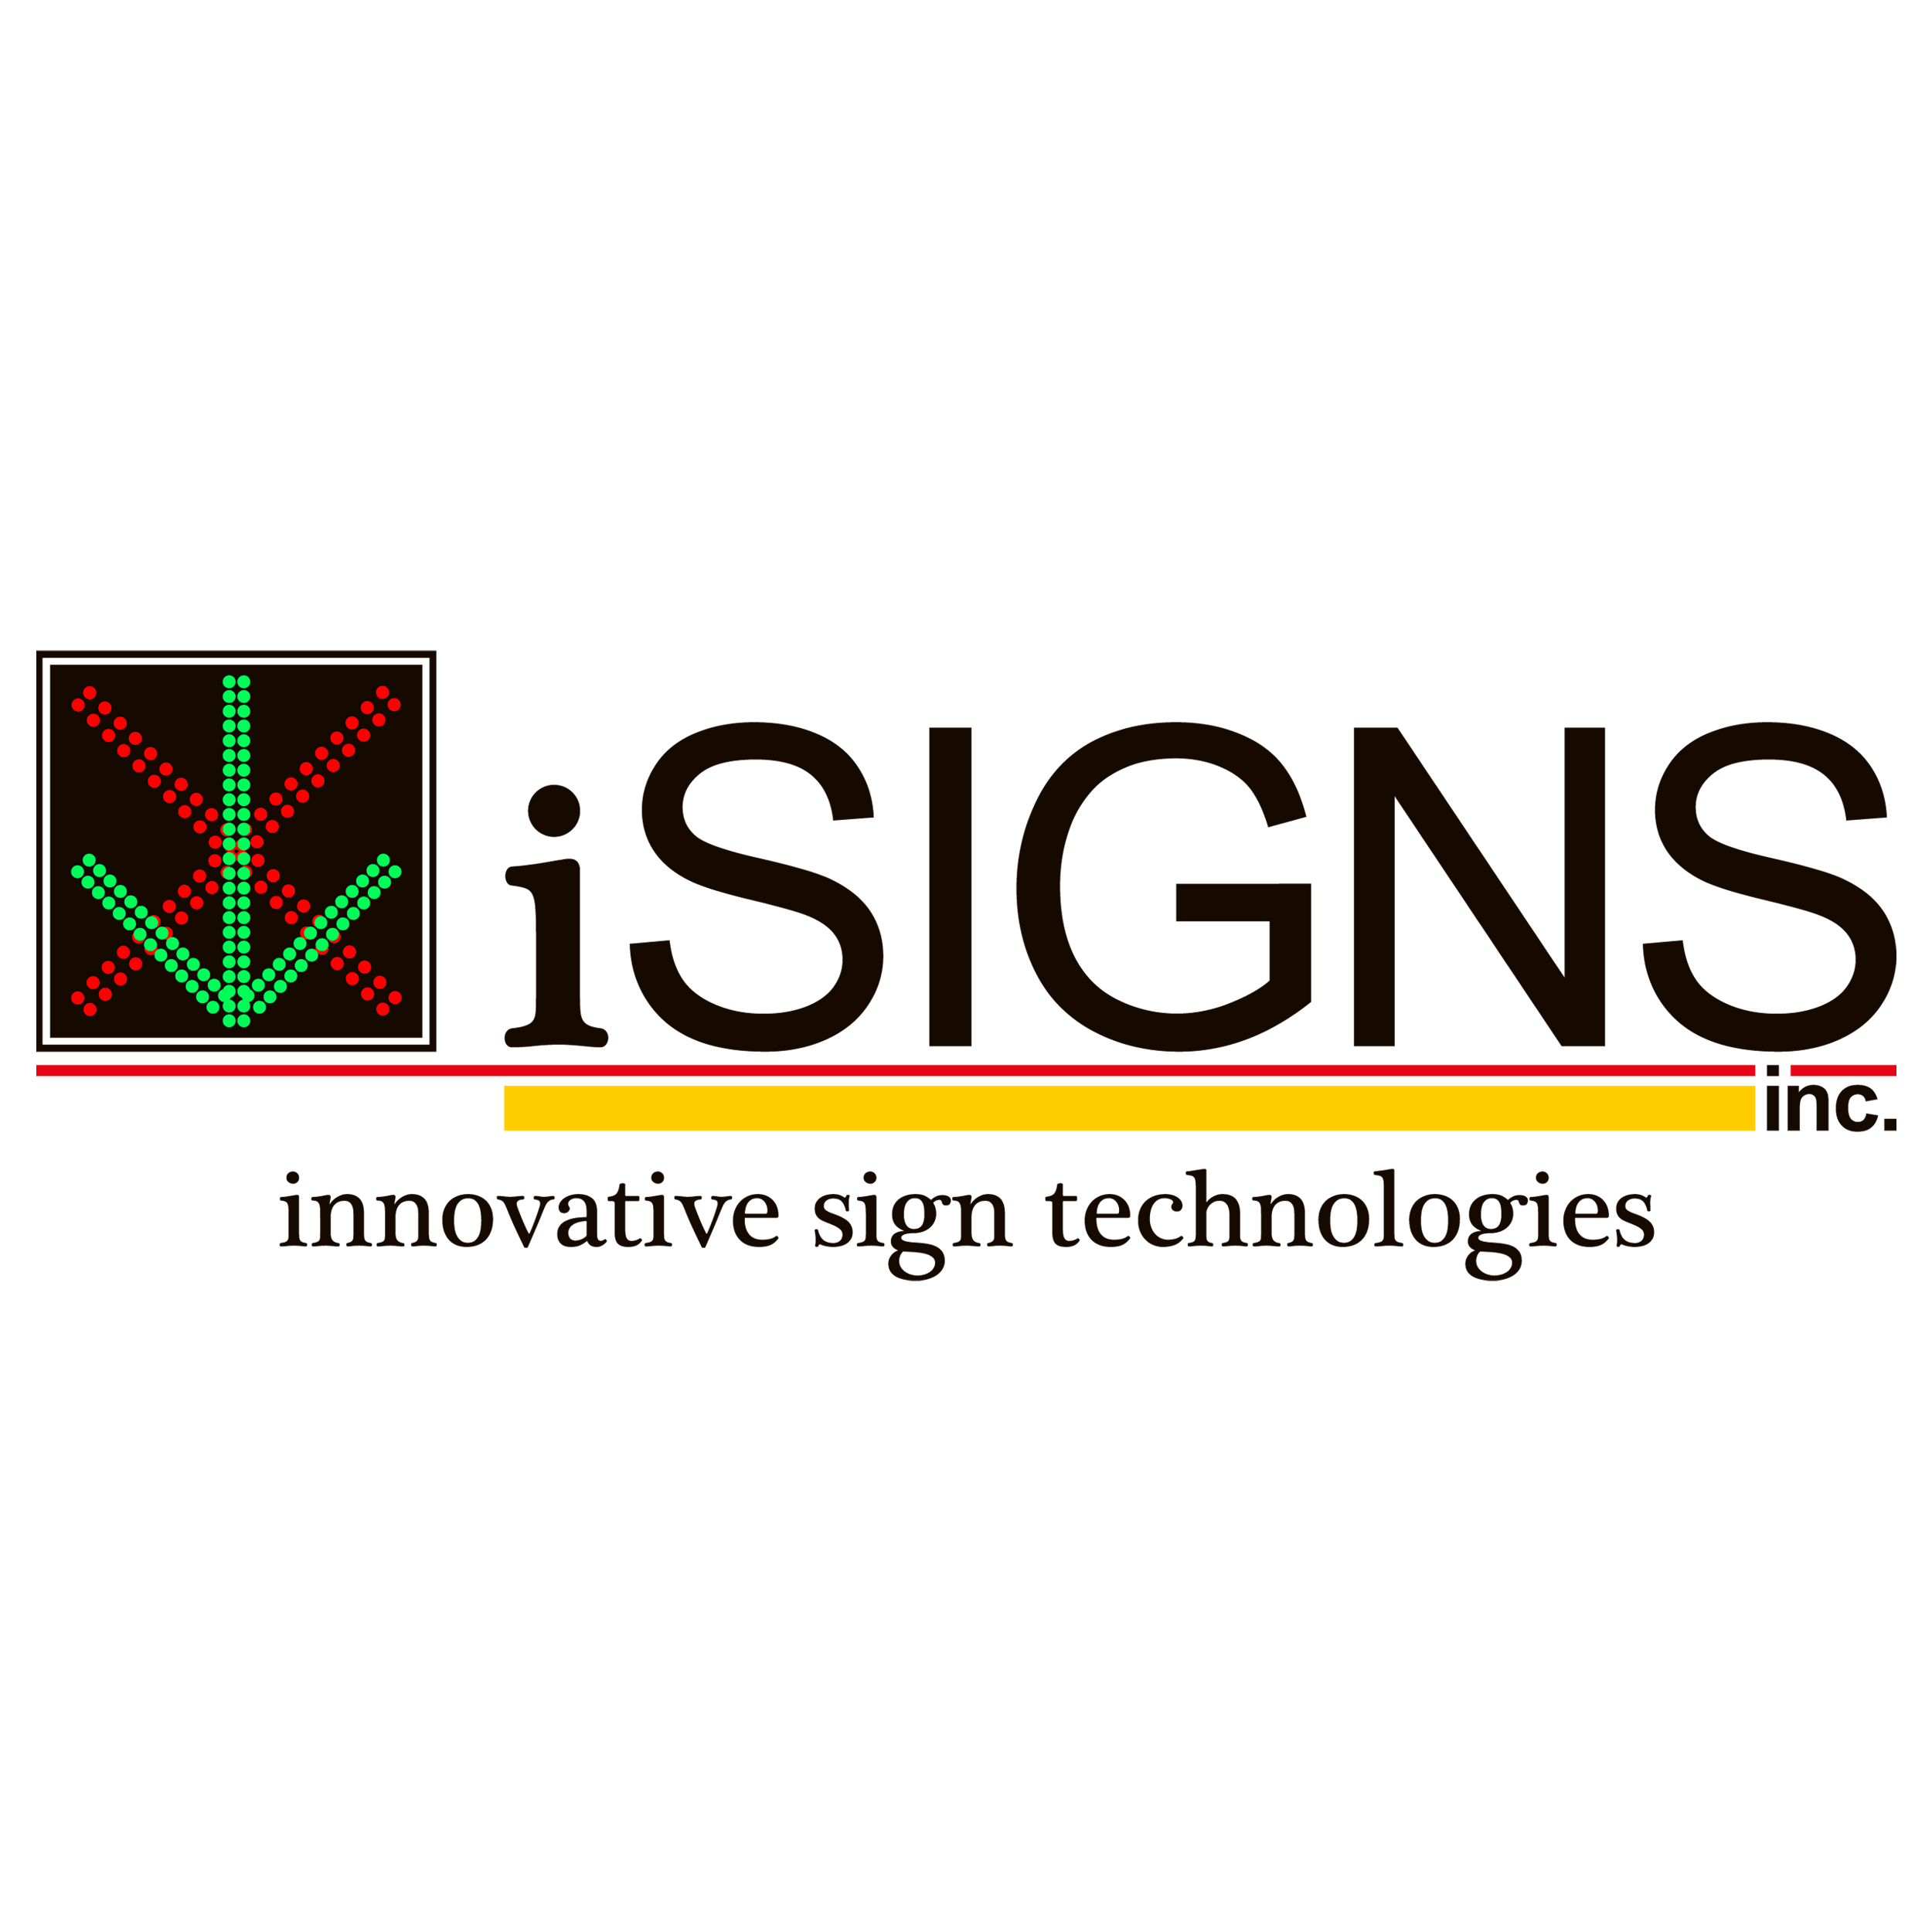 iSIGNS Inc. image 15